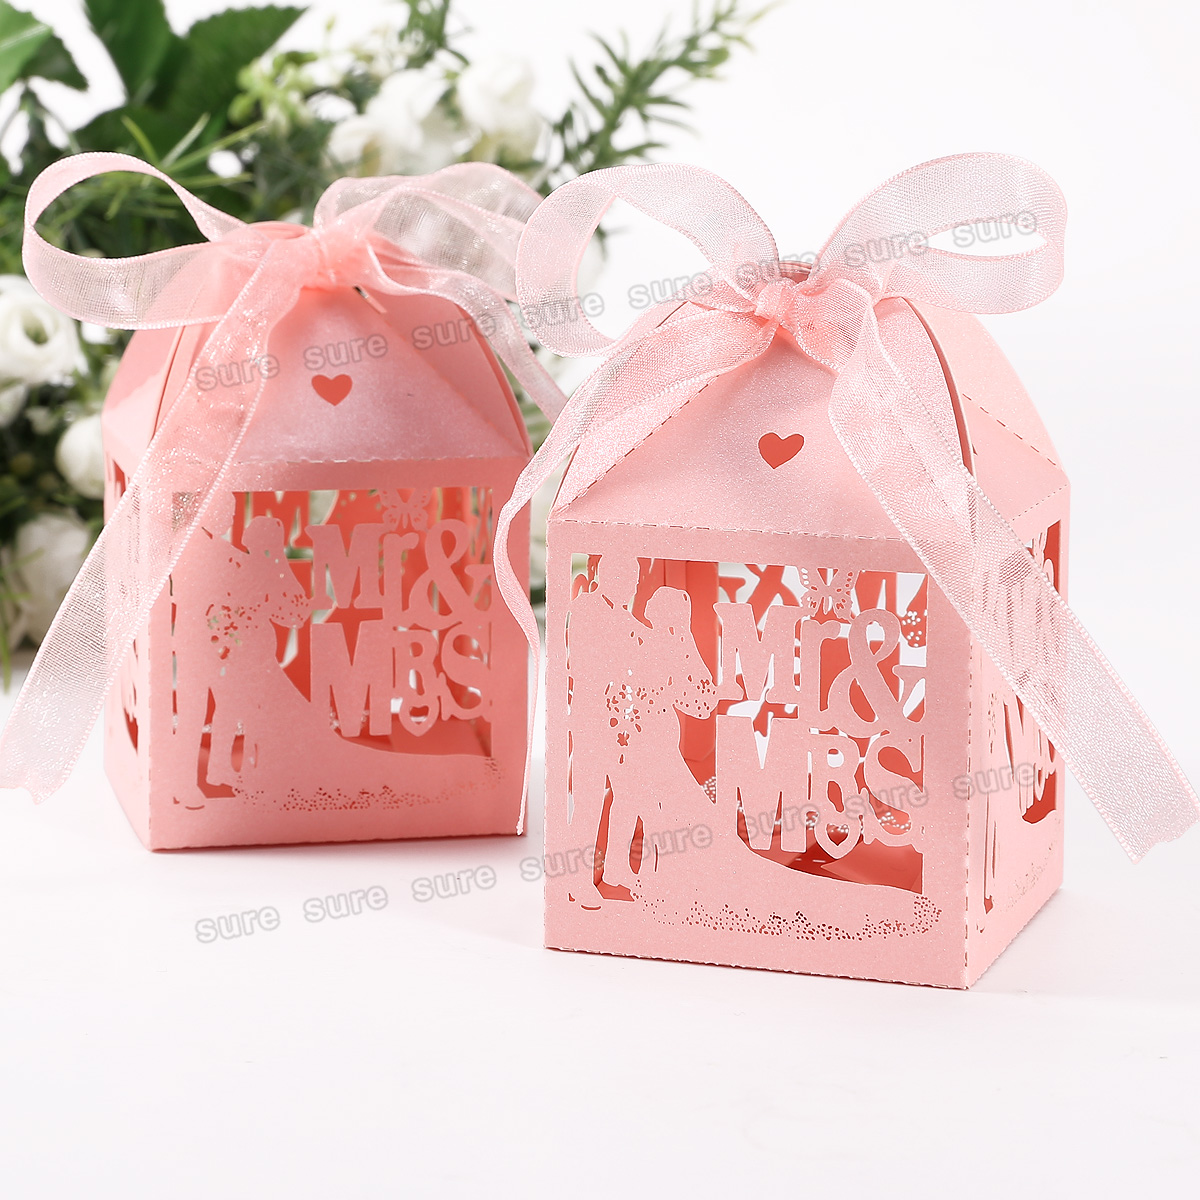 Wedding Party Engagement Specially Favor Boxes Mr&Mrs Laser Cut 4 Gift ...